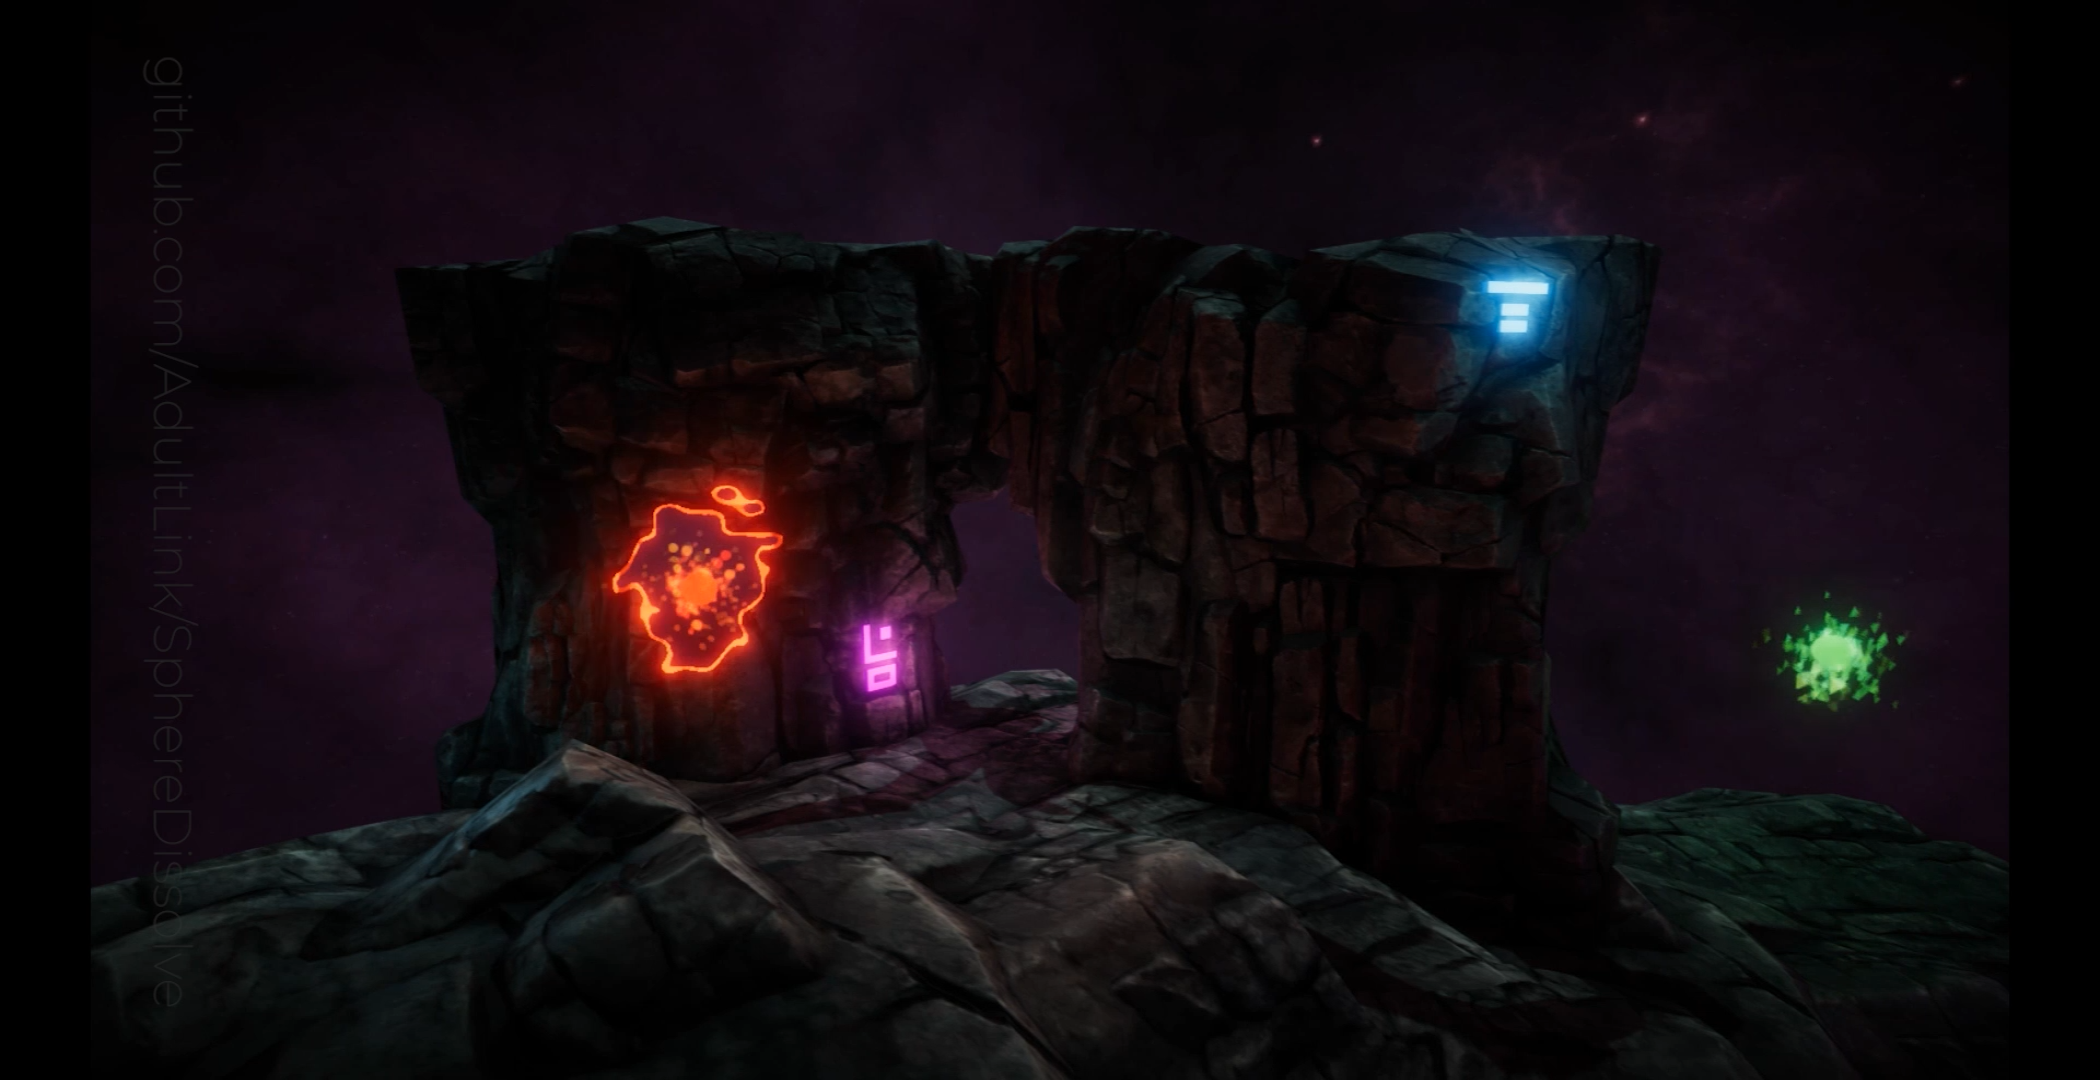 Playing around with dissolve shaders! (Unity source) #gamedev #game